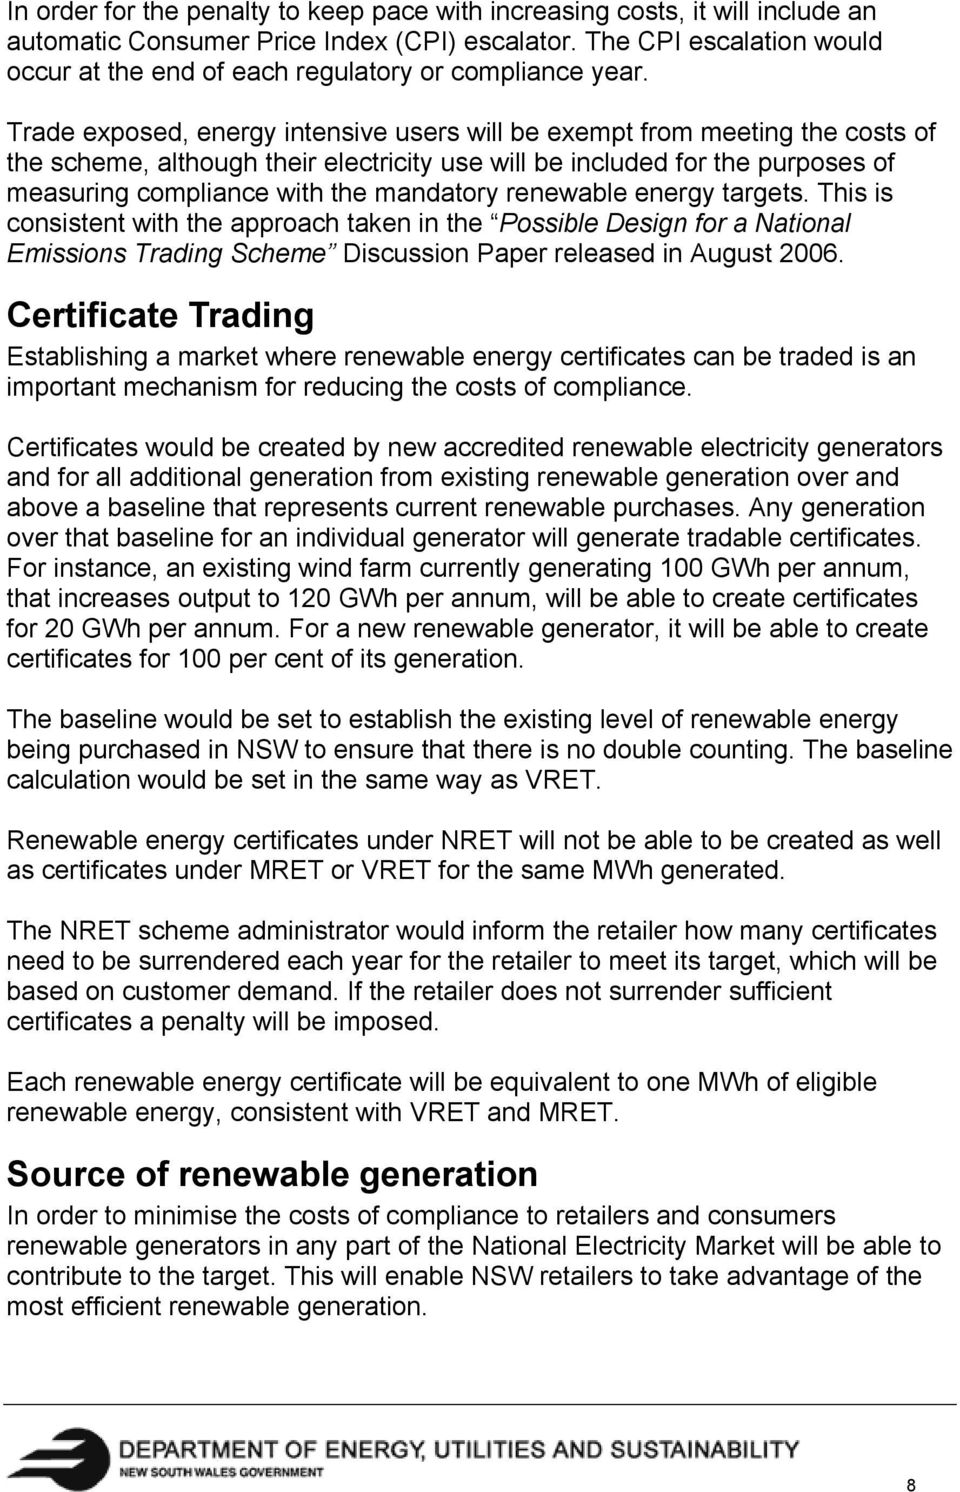 Trade exposed, energy intensive users will be exempt from meeting the costs of the scheme, although their electricity use will be included for the purposes of measuring compliance with the mandatory